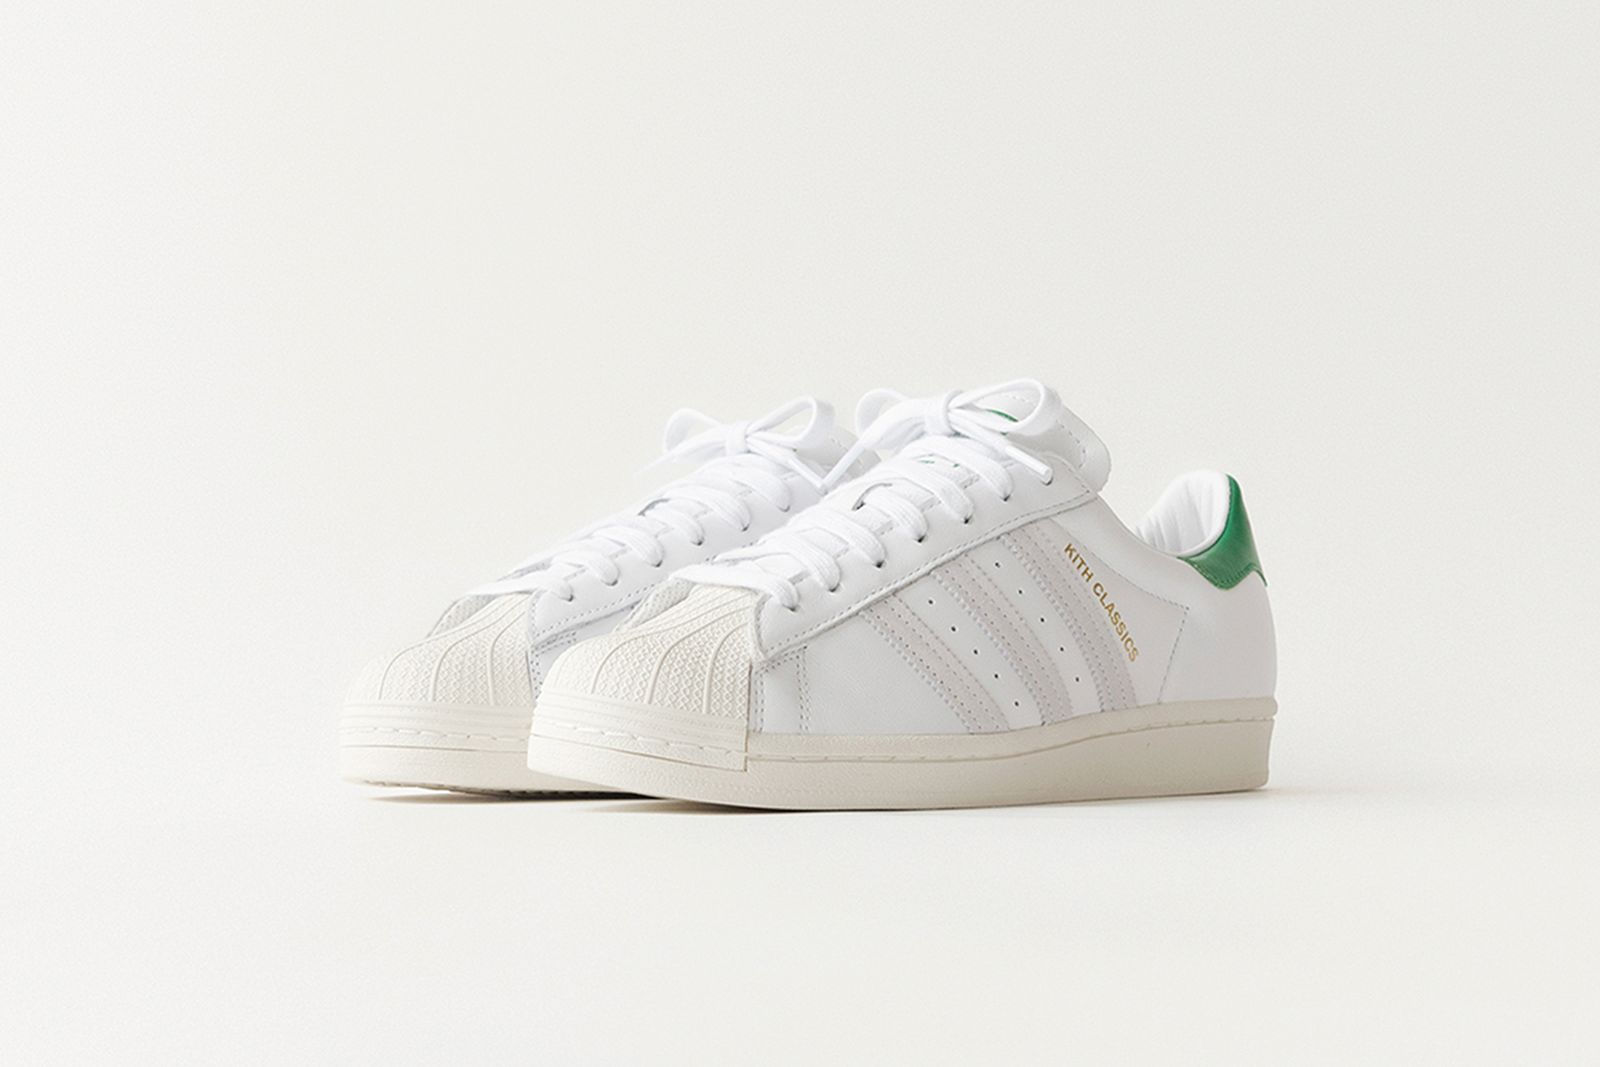 kith-adidas-summer-2021-release-info-13